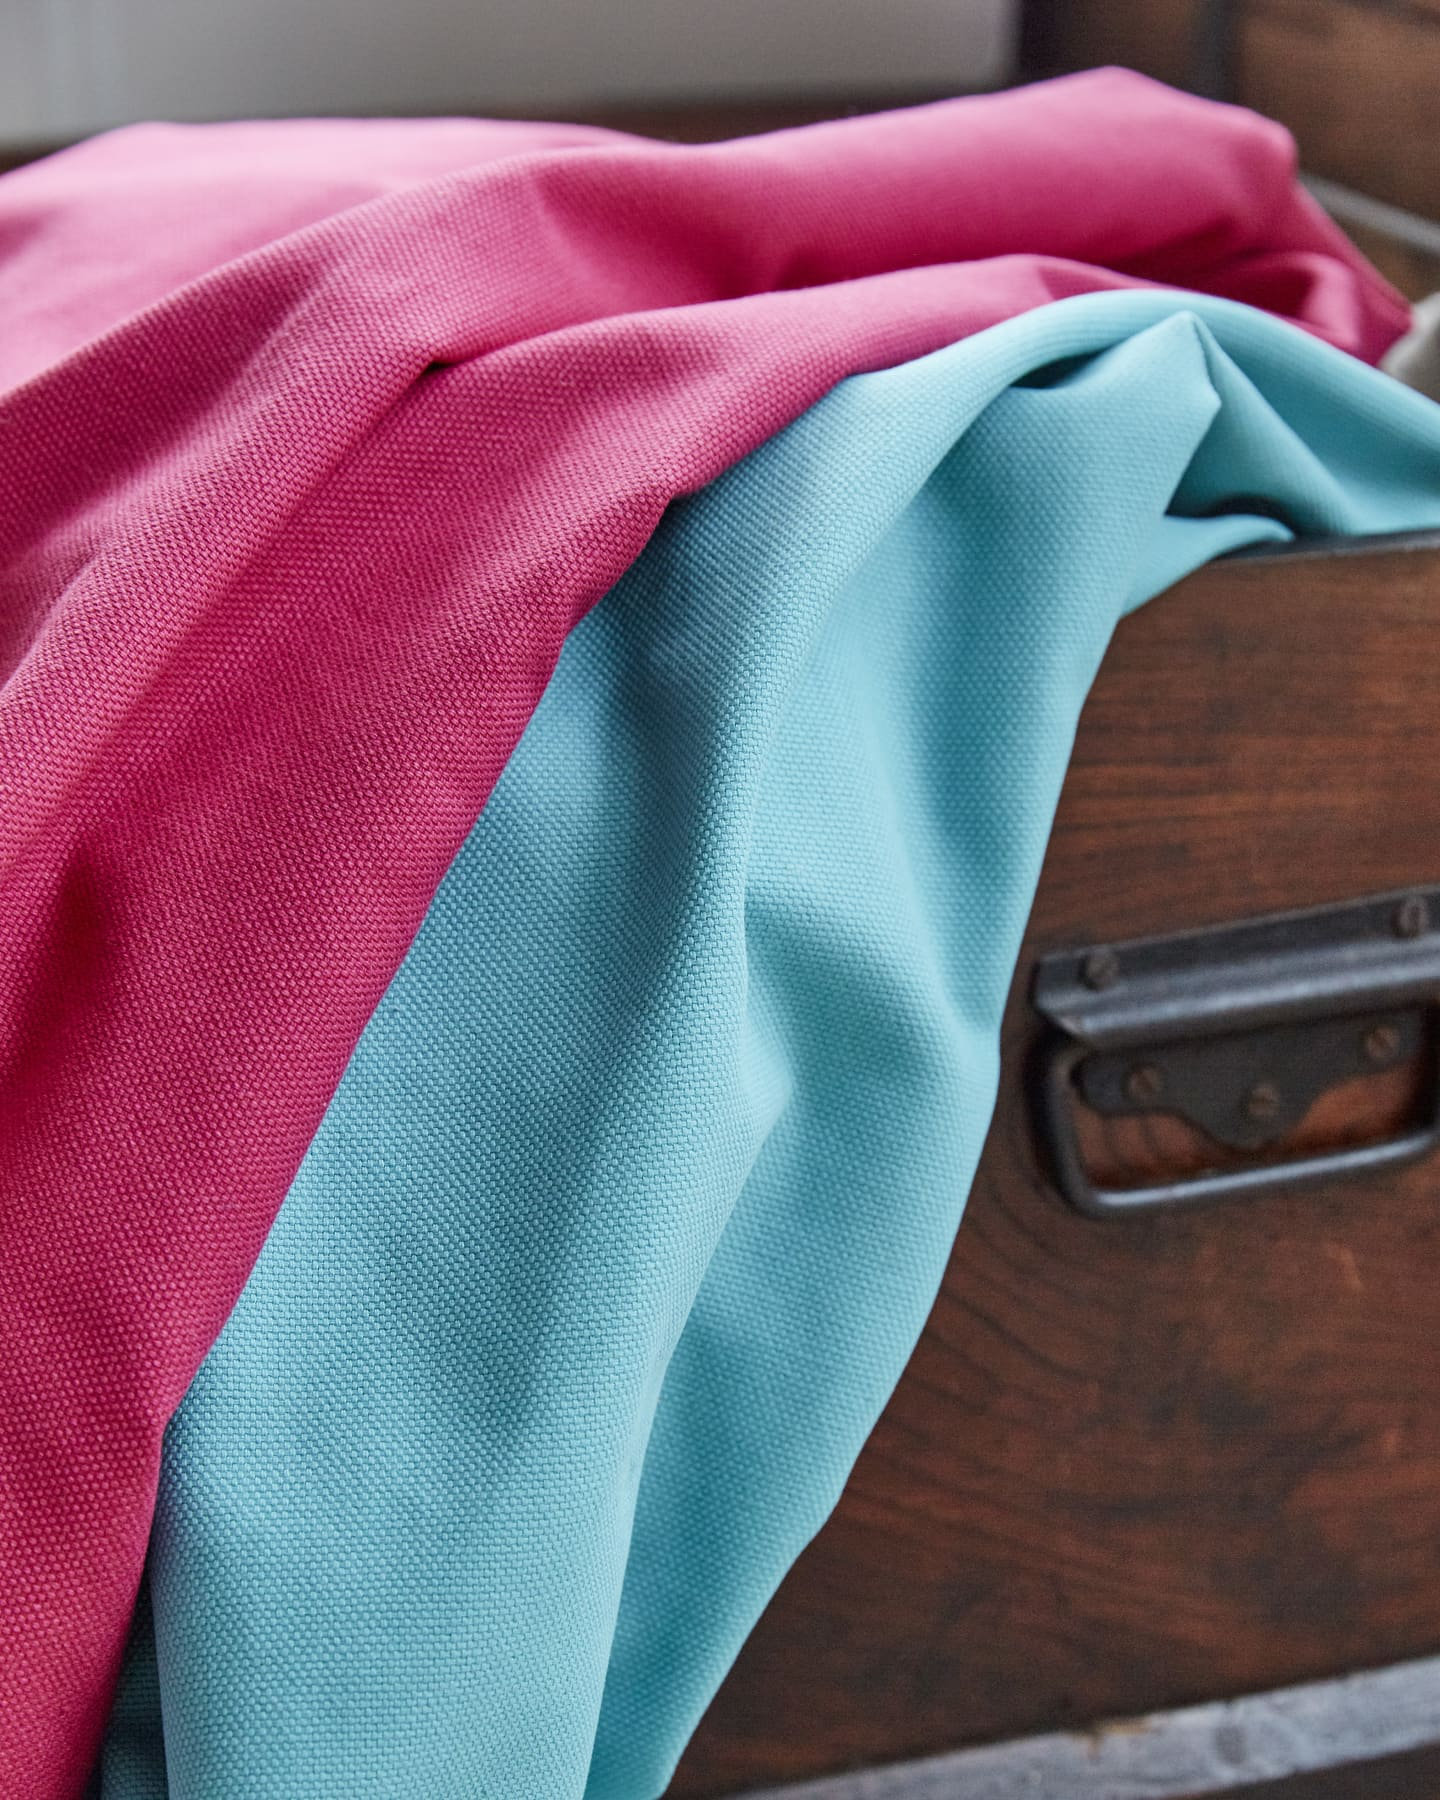 Bright pink and blue bits of fabric